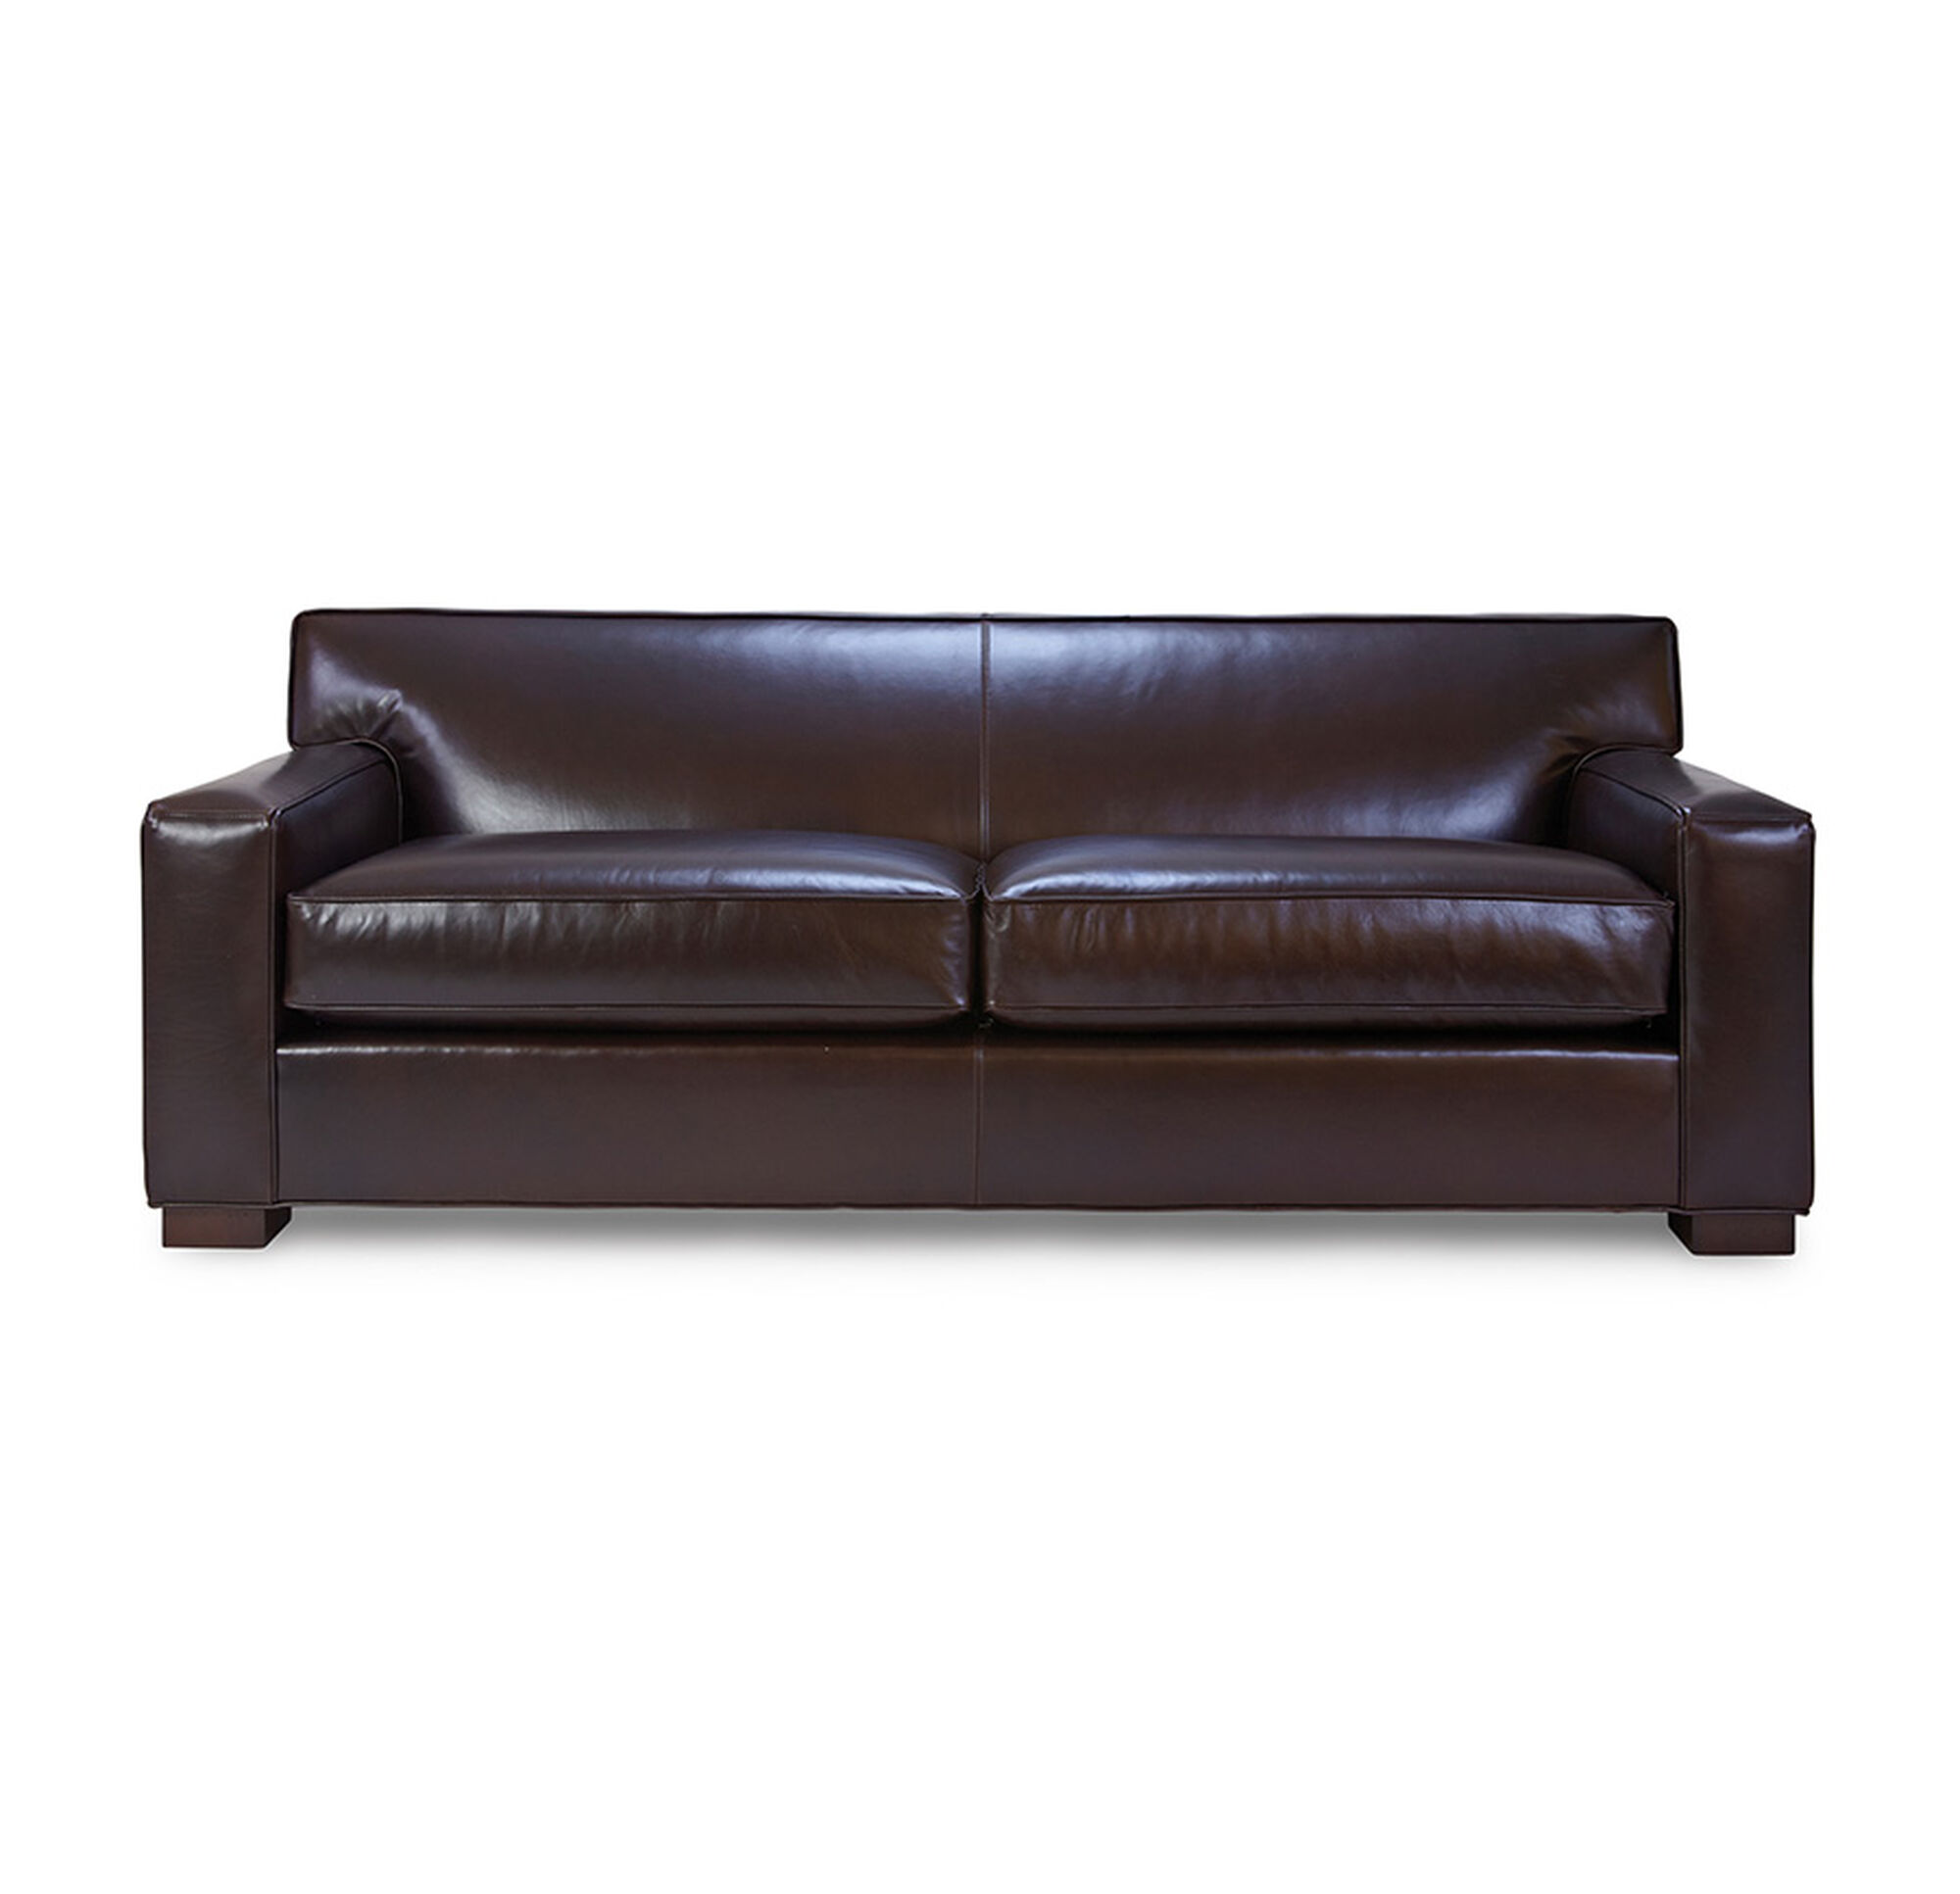 Sealy Leather Sofa Images Furniture Rooms